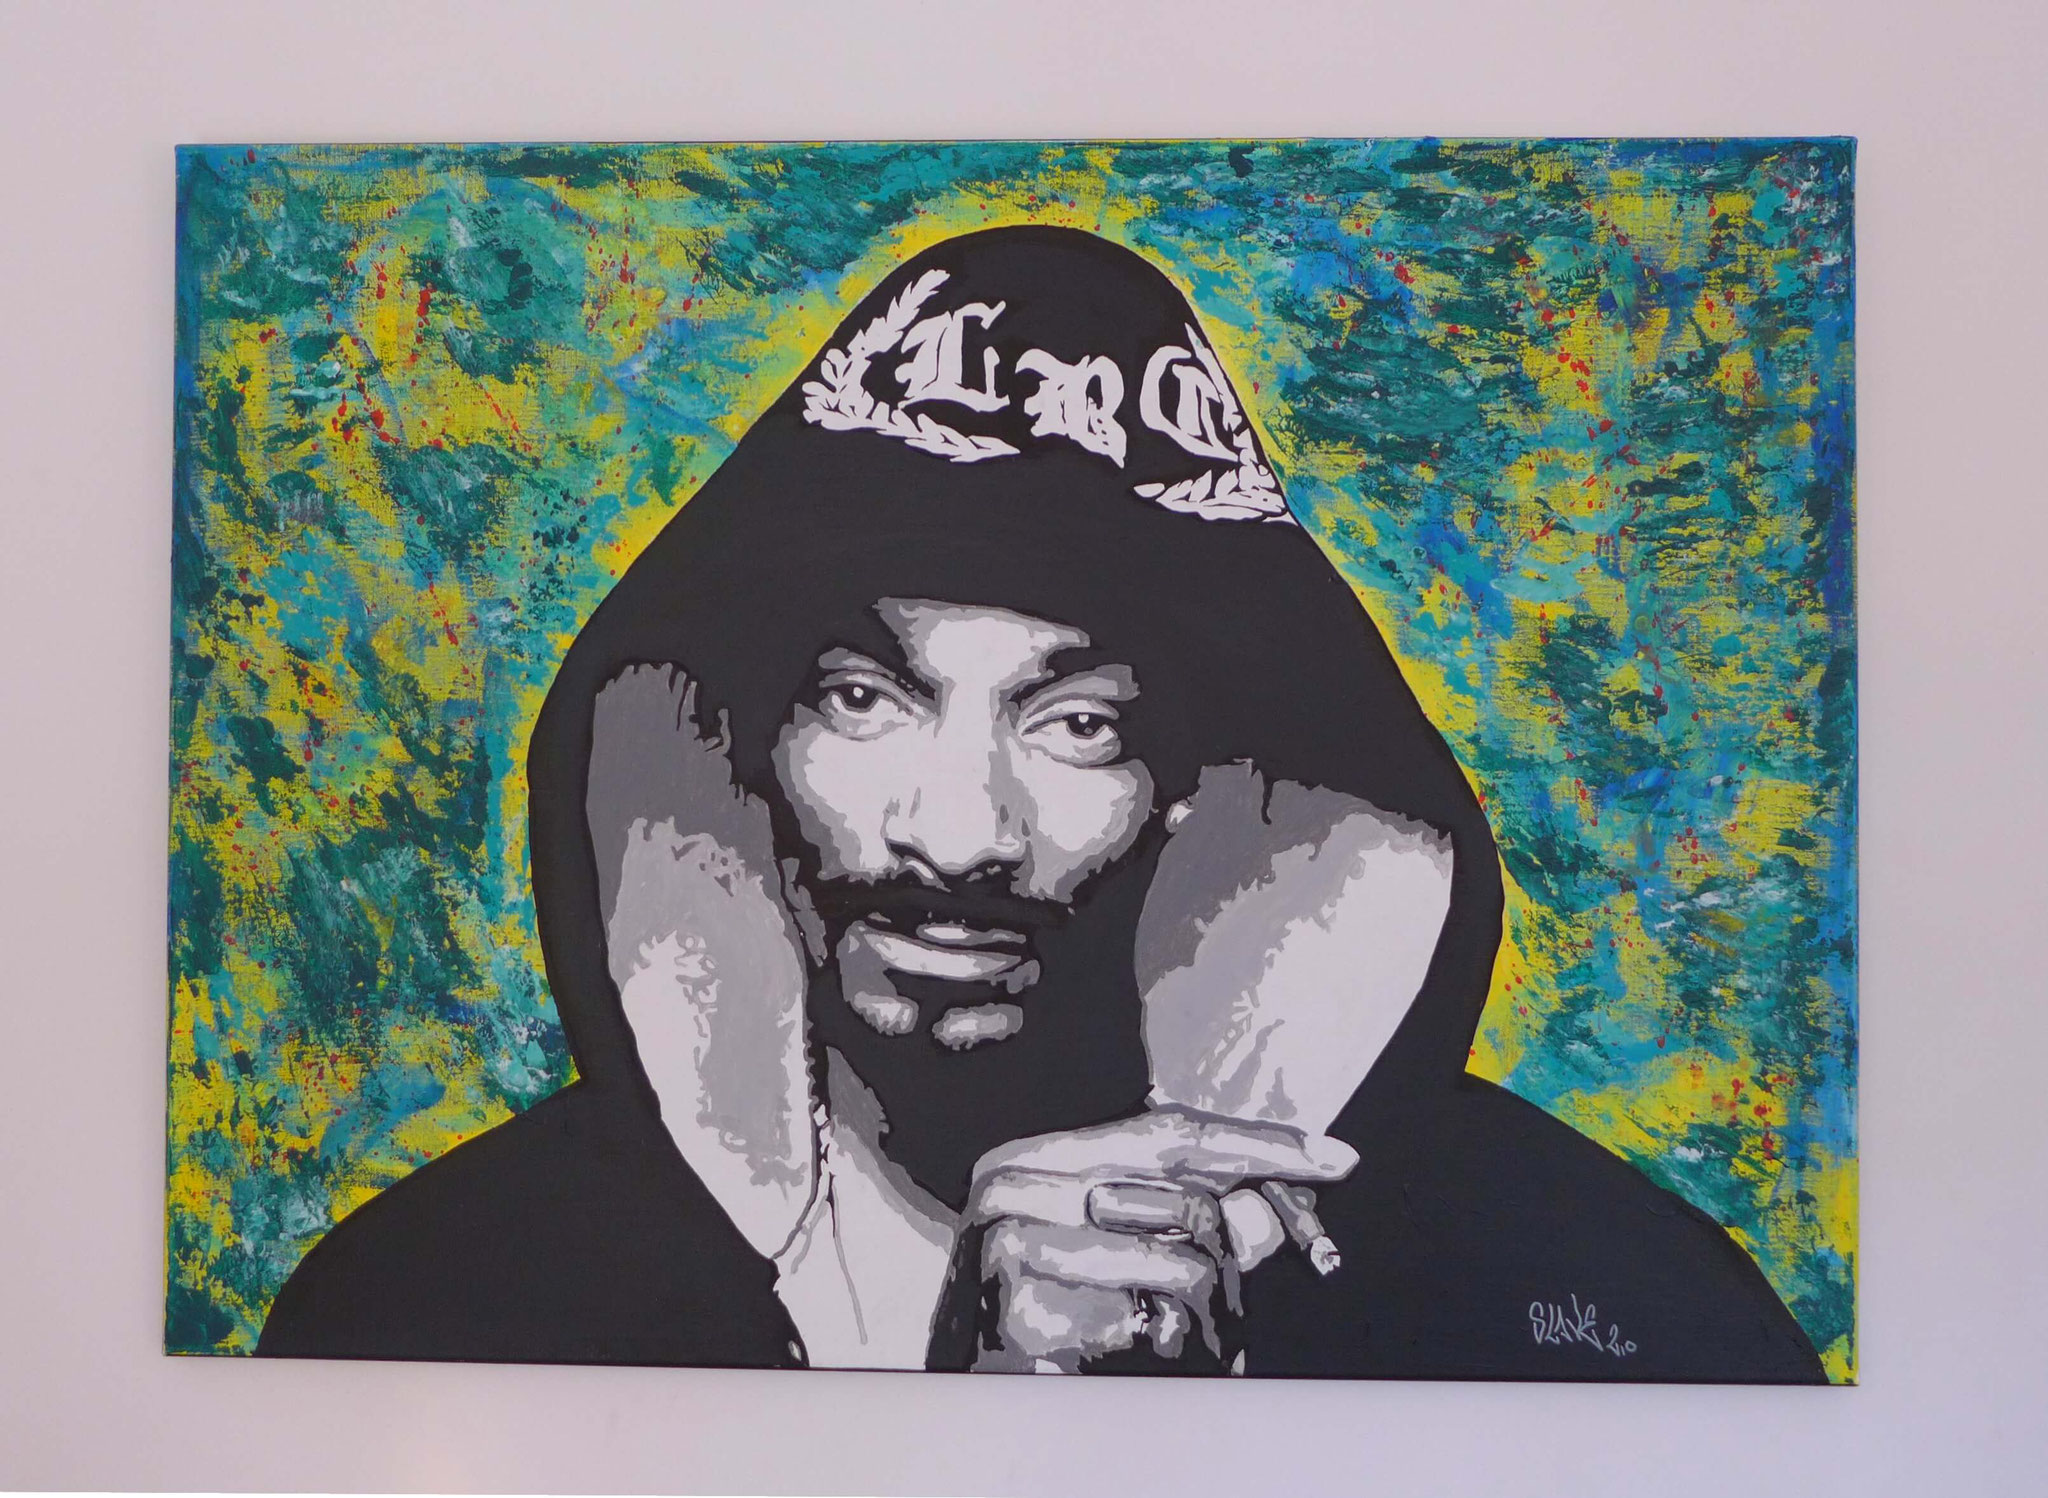 snoop-dogg-street-art-on-cavas-sur-toile-tableau-slave-2.0